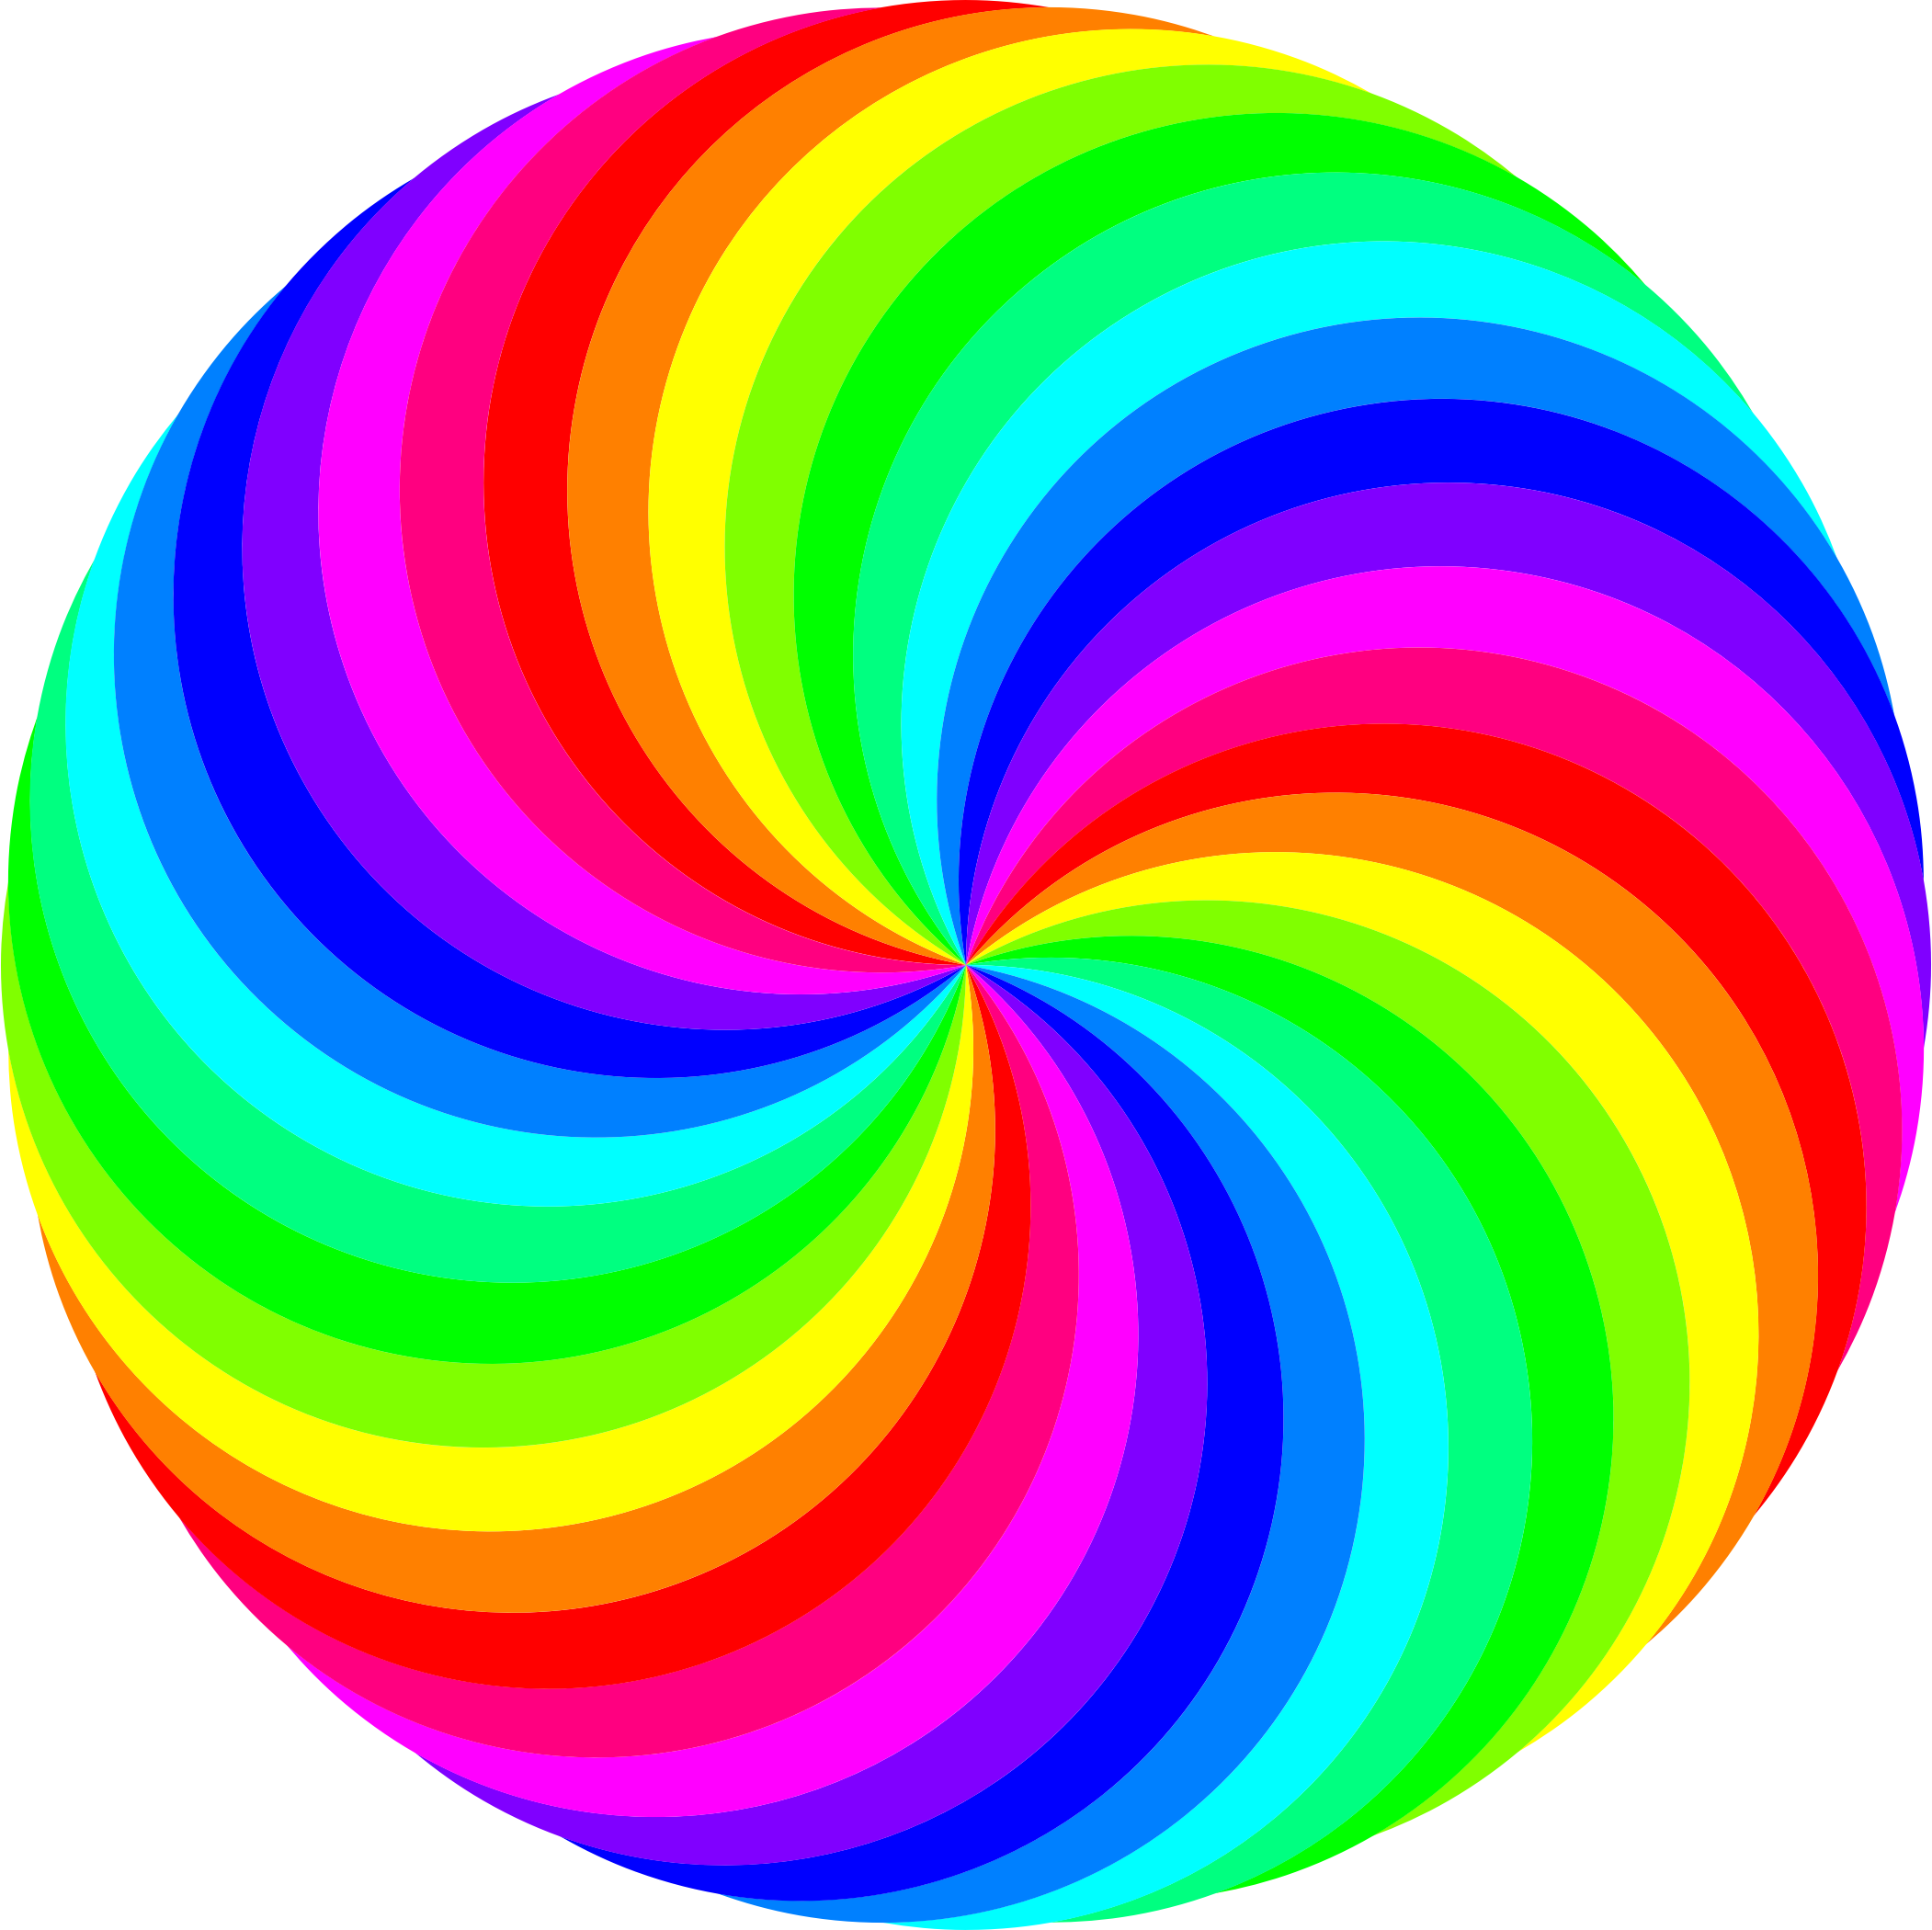 2102x2100 36 Circle Swirl 12 Color By @10binary, 36 Circle Swirl 12 Color